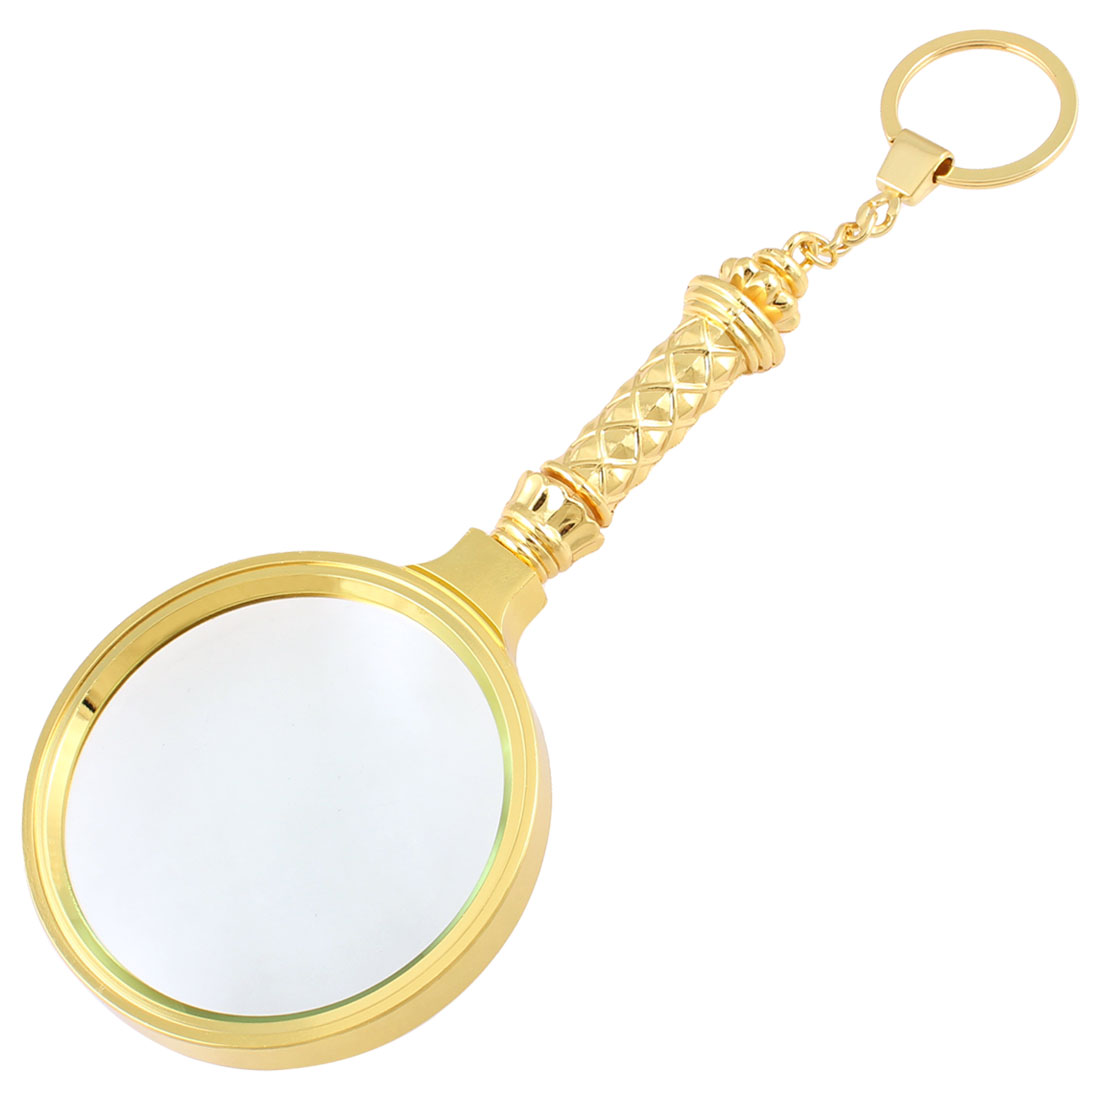 Detachable Grip Metal Ring 67mm Dia.Lens 4X Handheld Magnifier Magnifying Glass